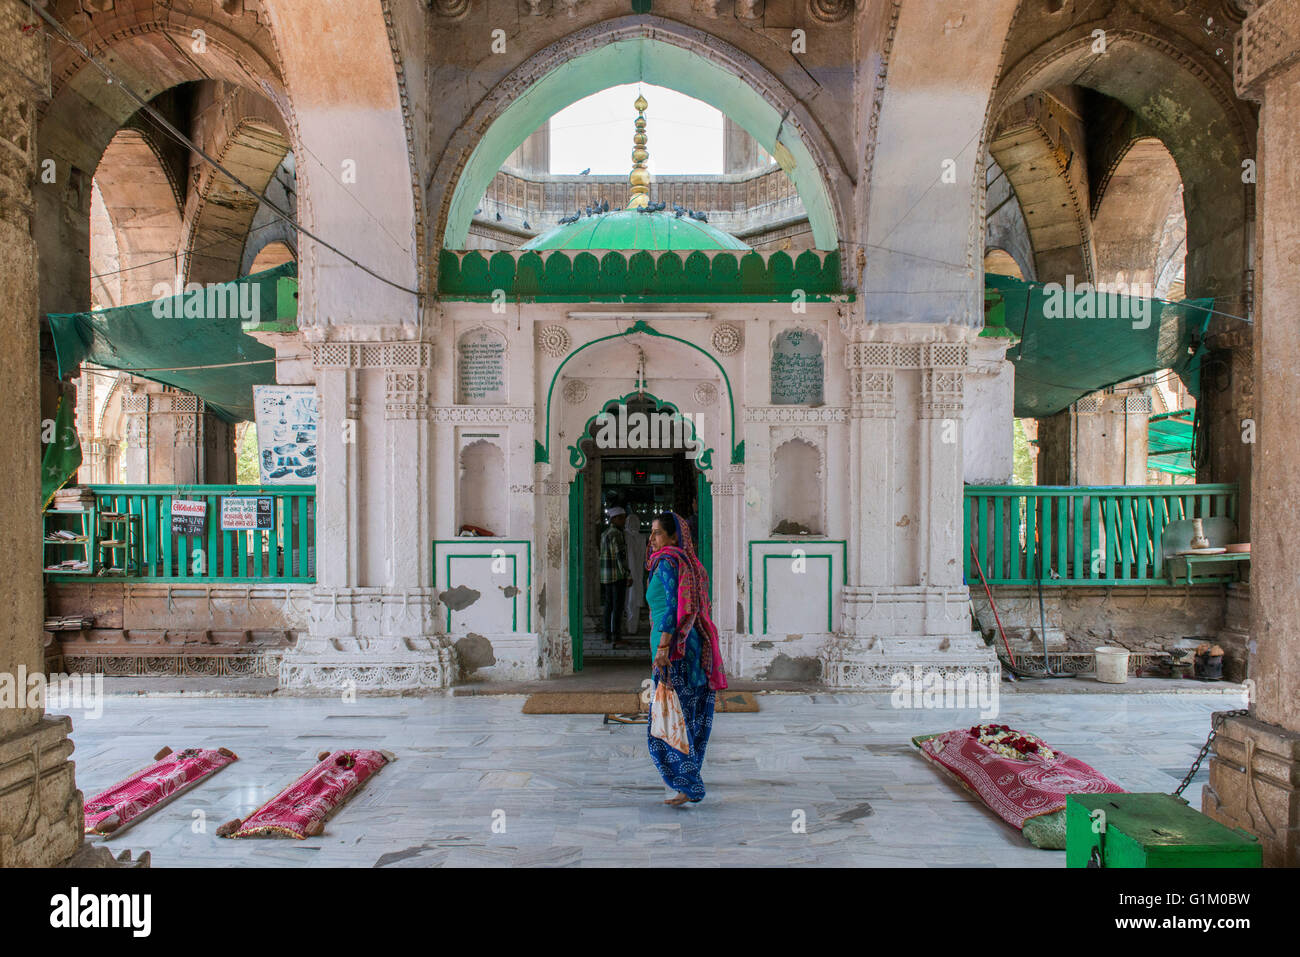 Lady At Kutb-e-Alam Mosque, Ahmedabad - Stock Image